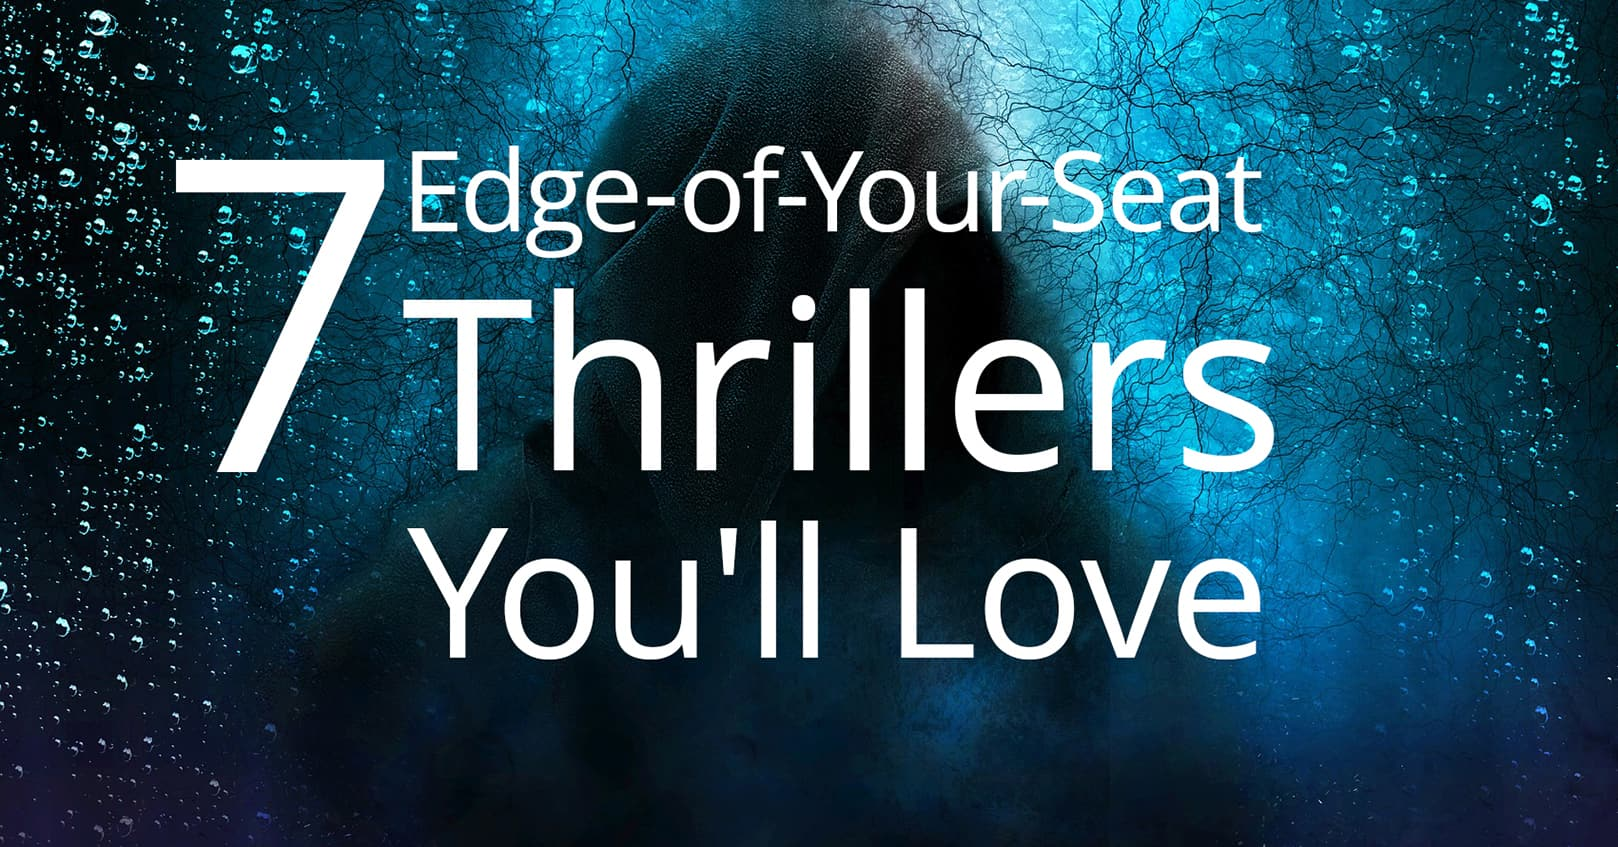 edge-of-your-seat thrillers